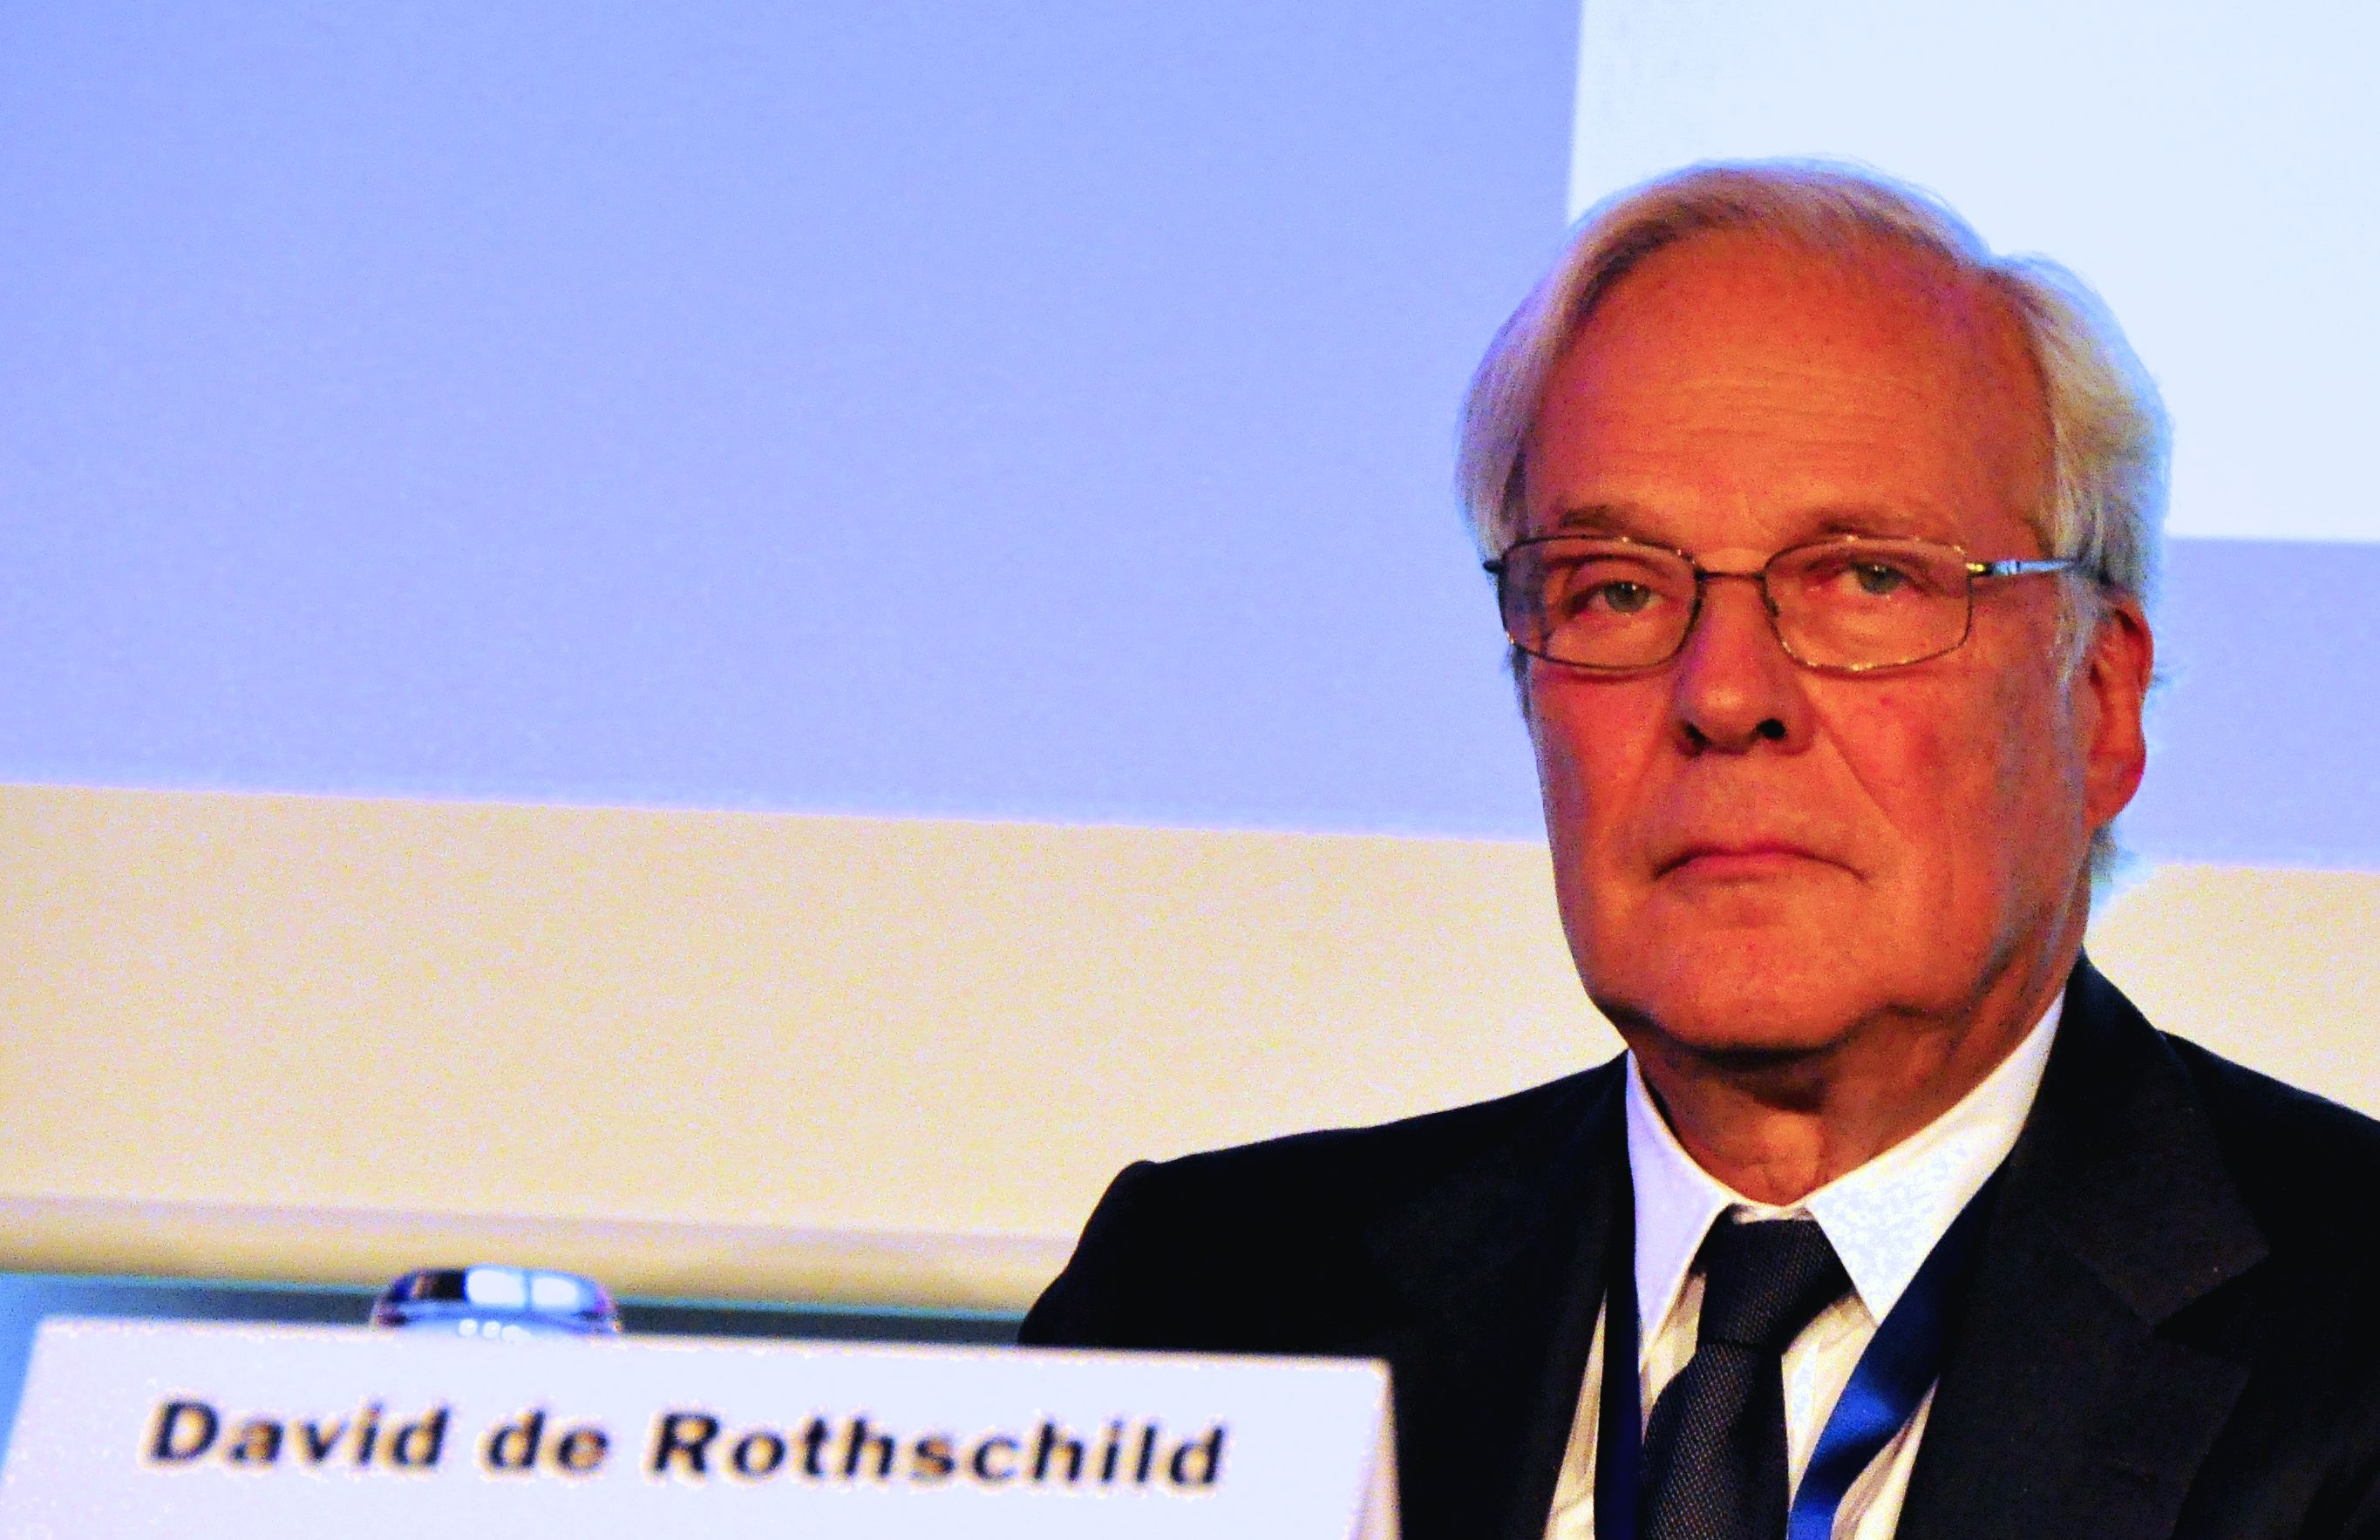 File:David de Rothschild 2014.jpg - Wikimedia Commons